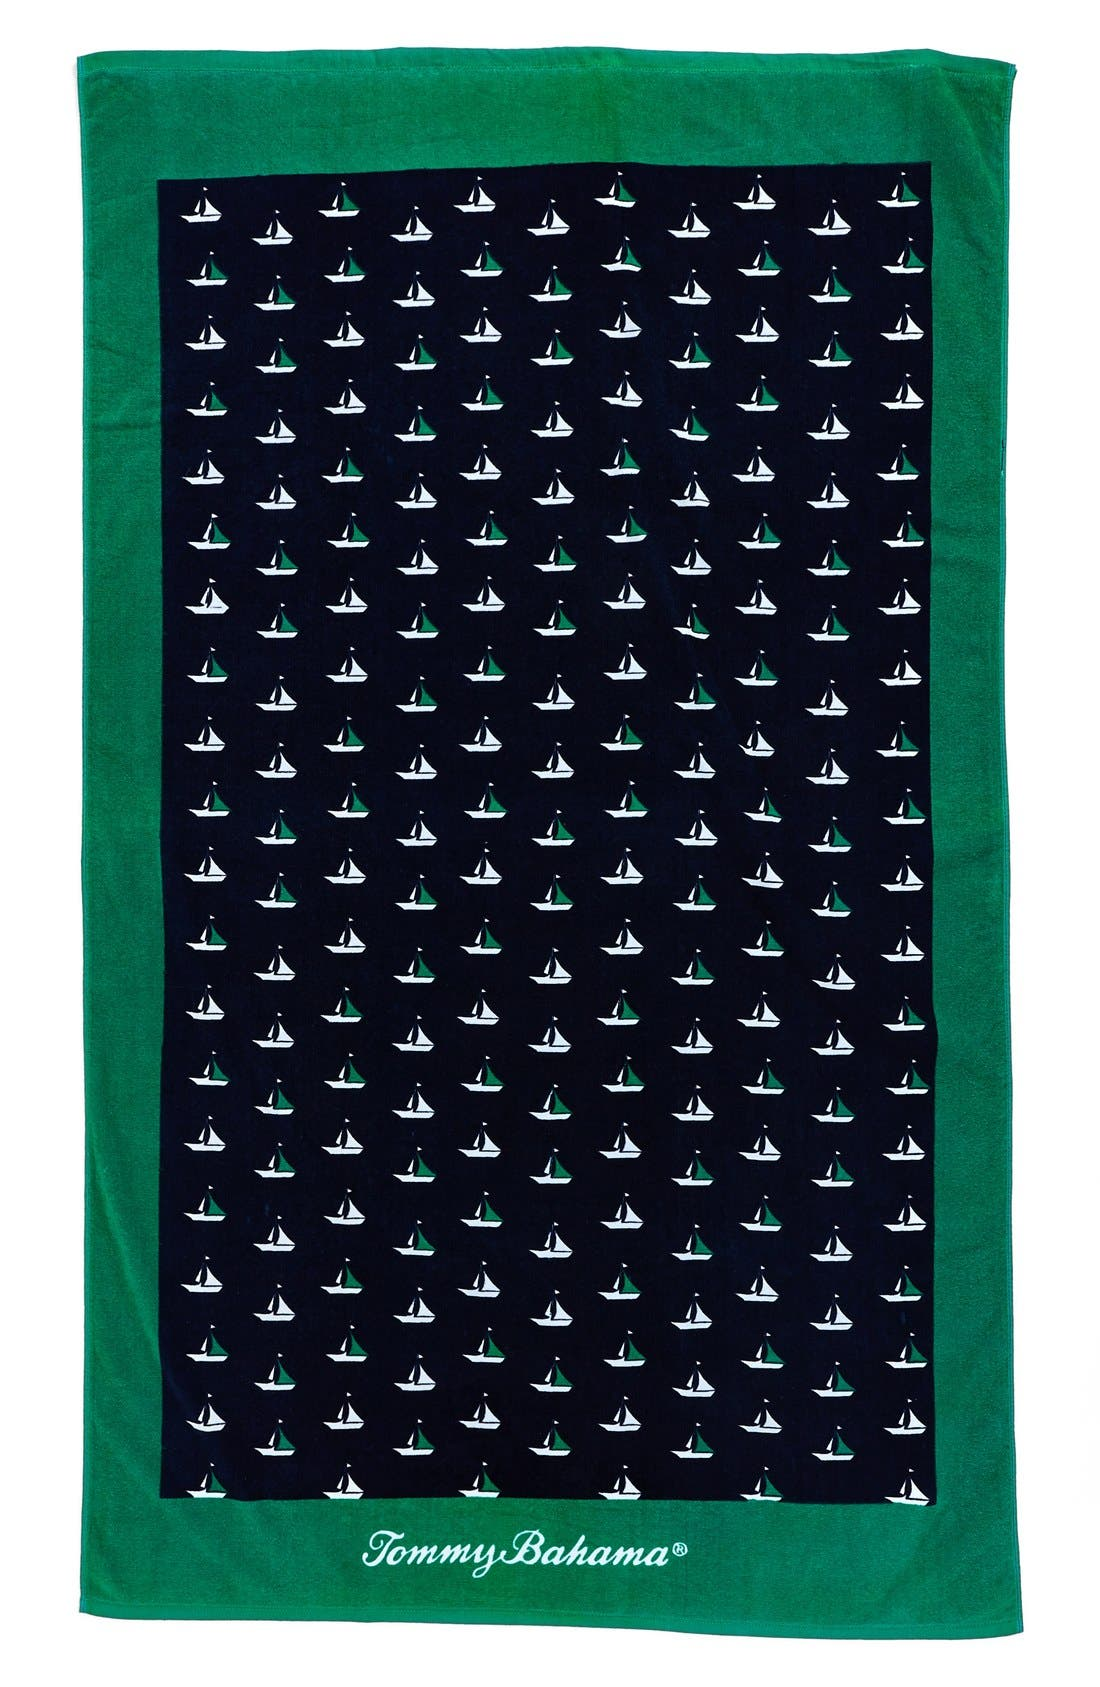 Alternate Image 1 Selected - Tommy Bahama 'Sailboats' Cotton Terry Beach Towel